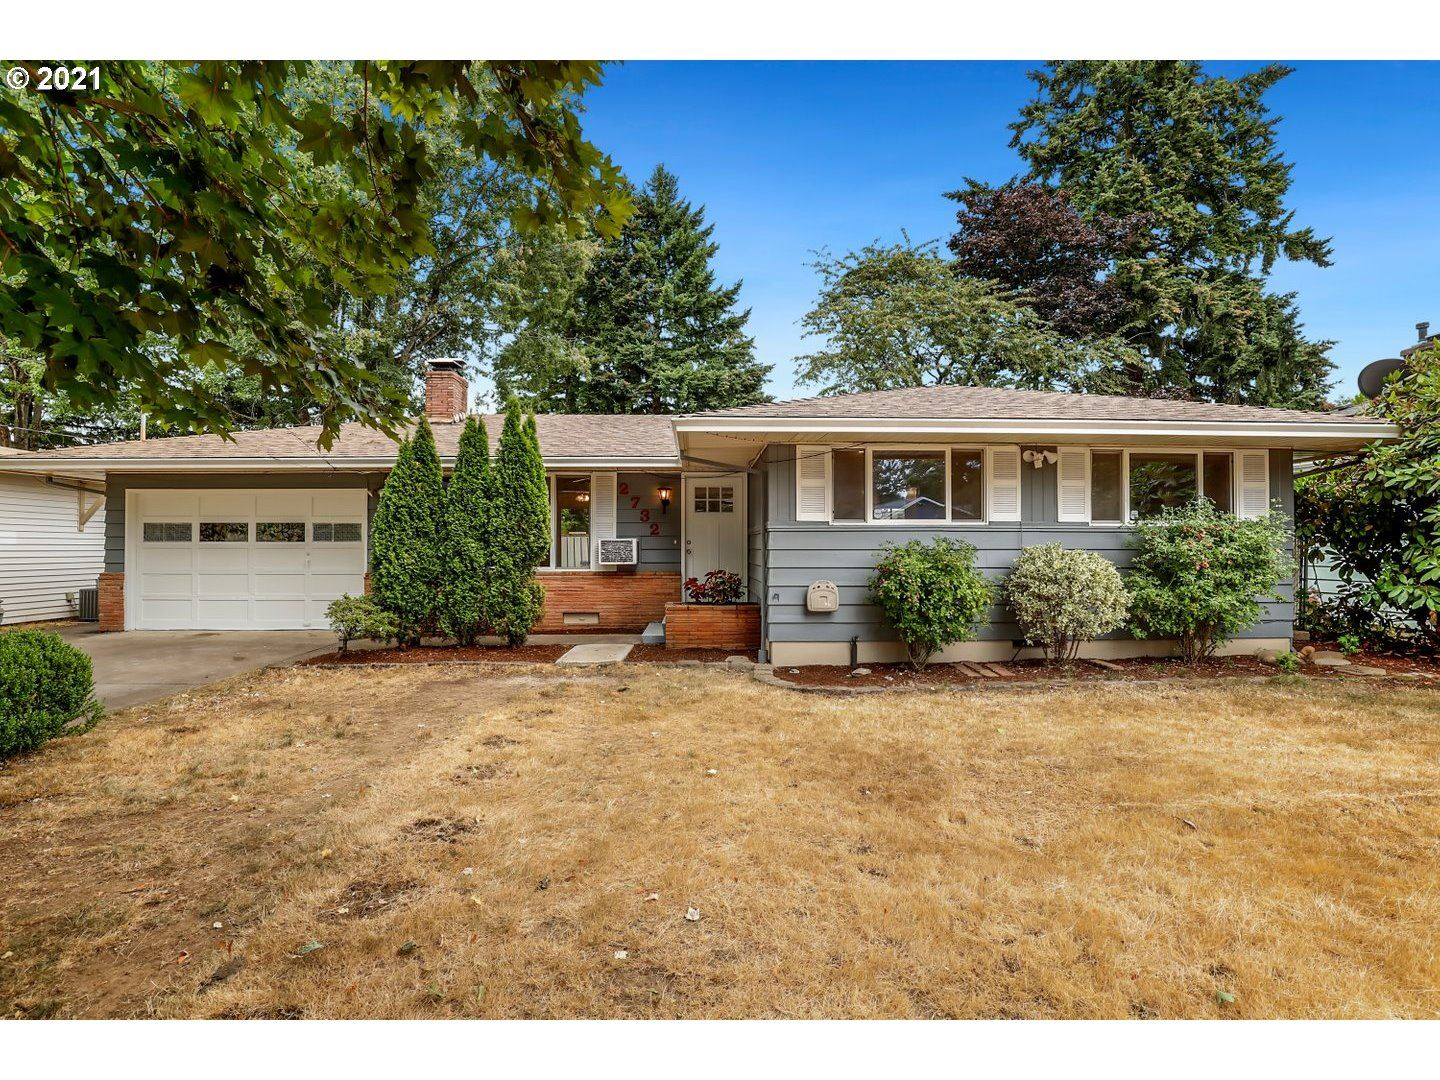 2732 SE 168TH AVE, Portland, OR 97236 - MLS#: 21464132